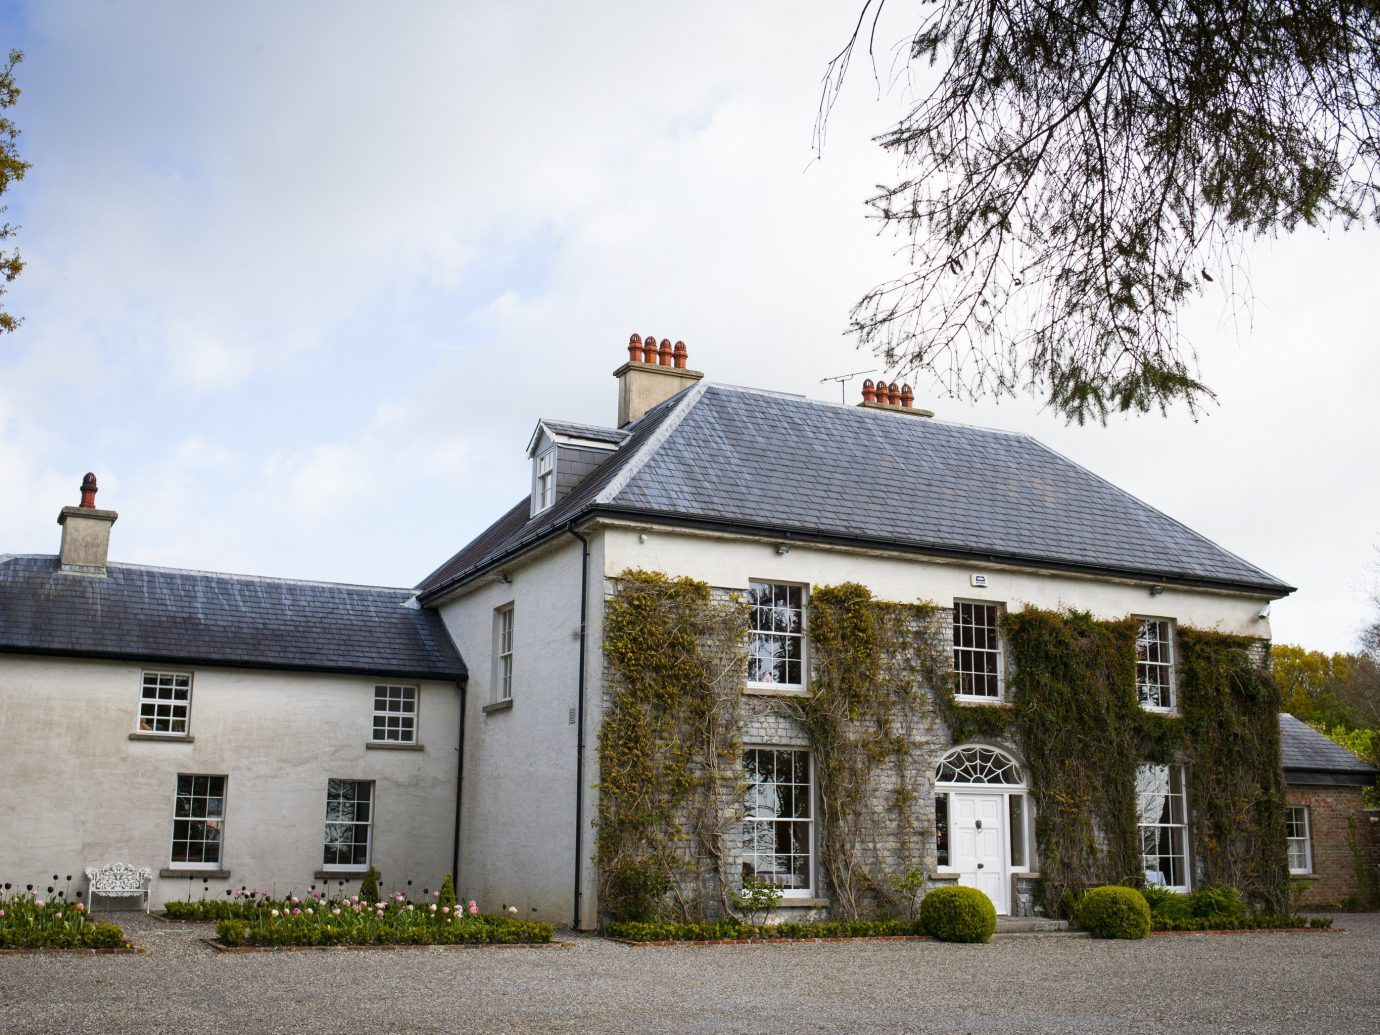 europe Hotels Ireland property house estate home cottage building farmhouse manor house mansion real estate roof facade window château tree sky Villa